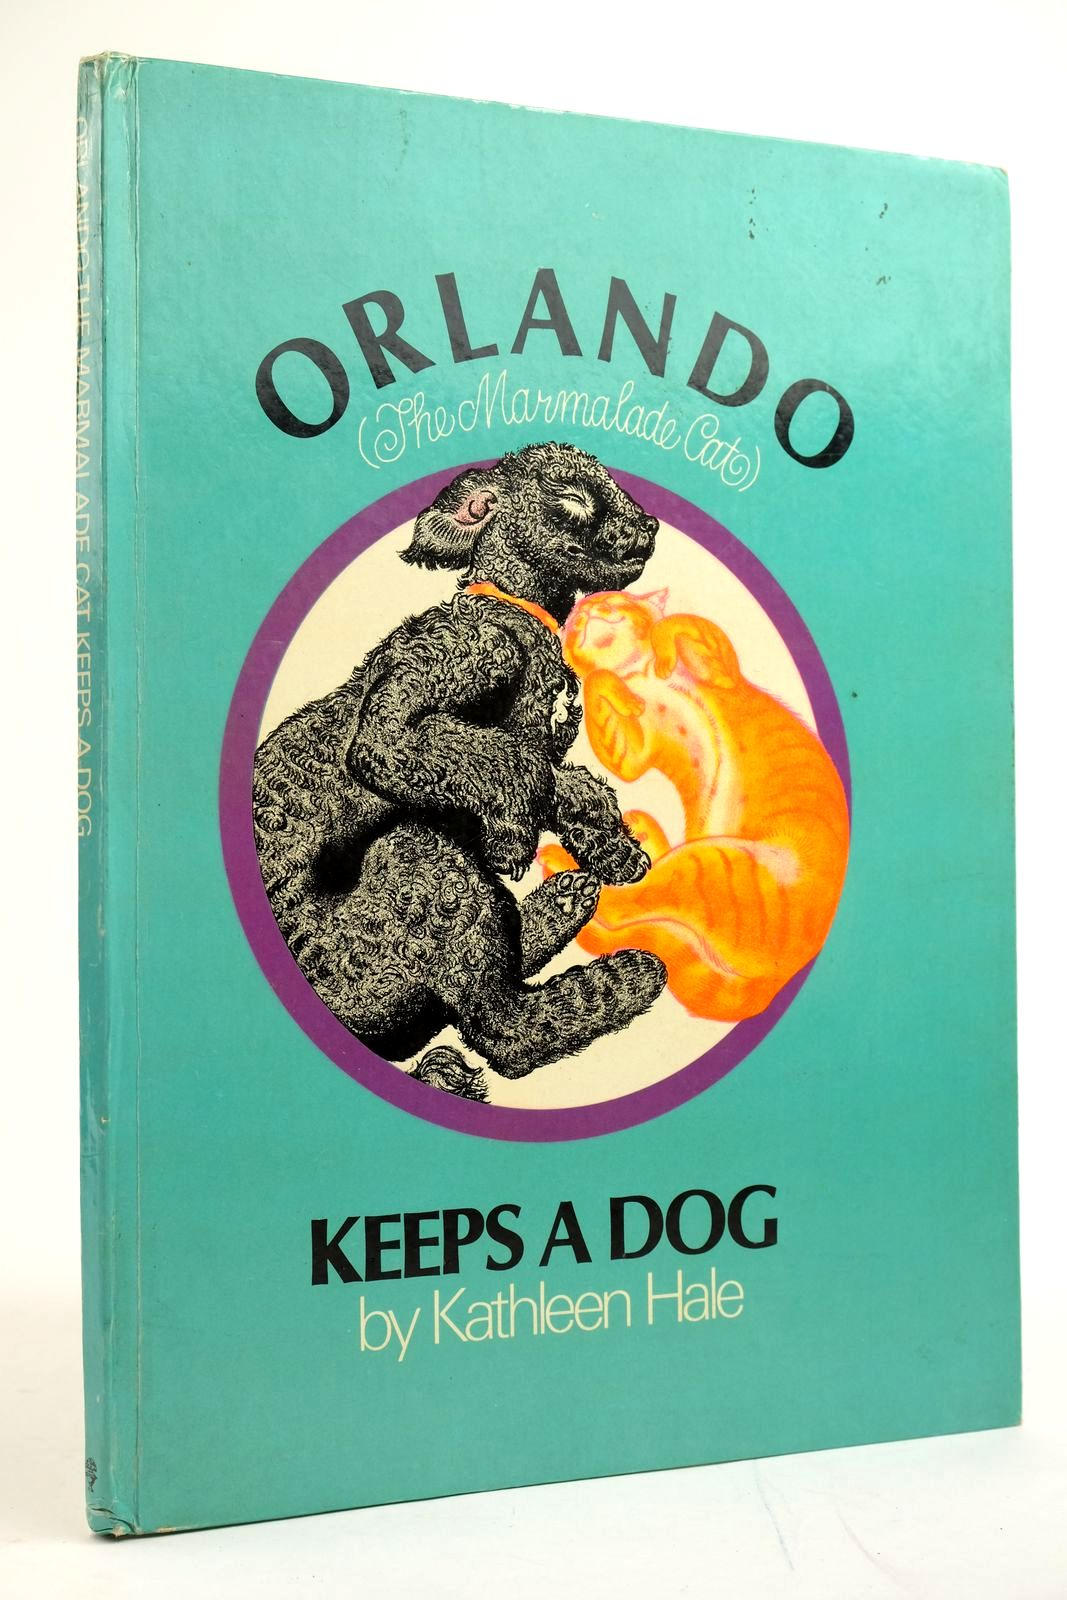 Photo of ORLANDO (THE MARMALADE CAT) KEEPS A DOG- Stock Number: 2135101